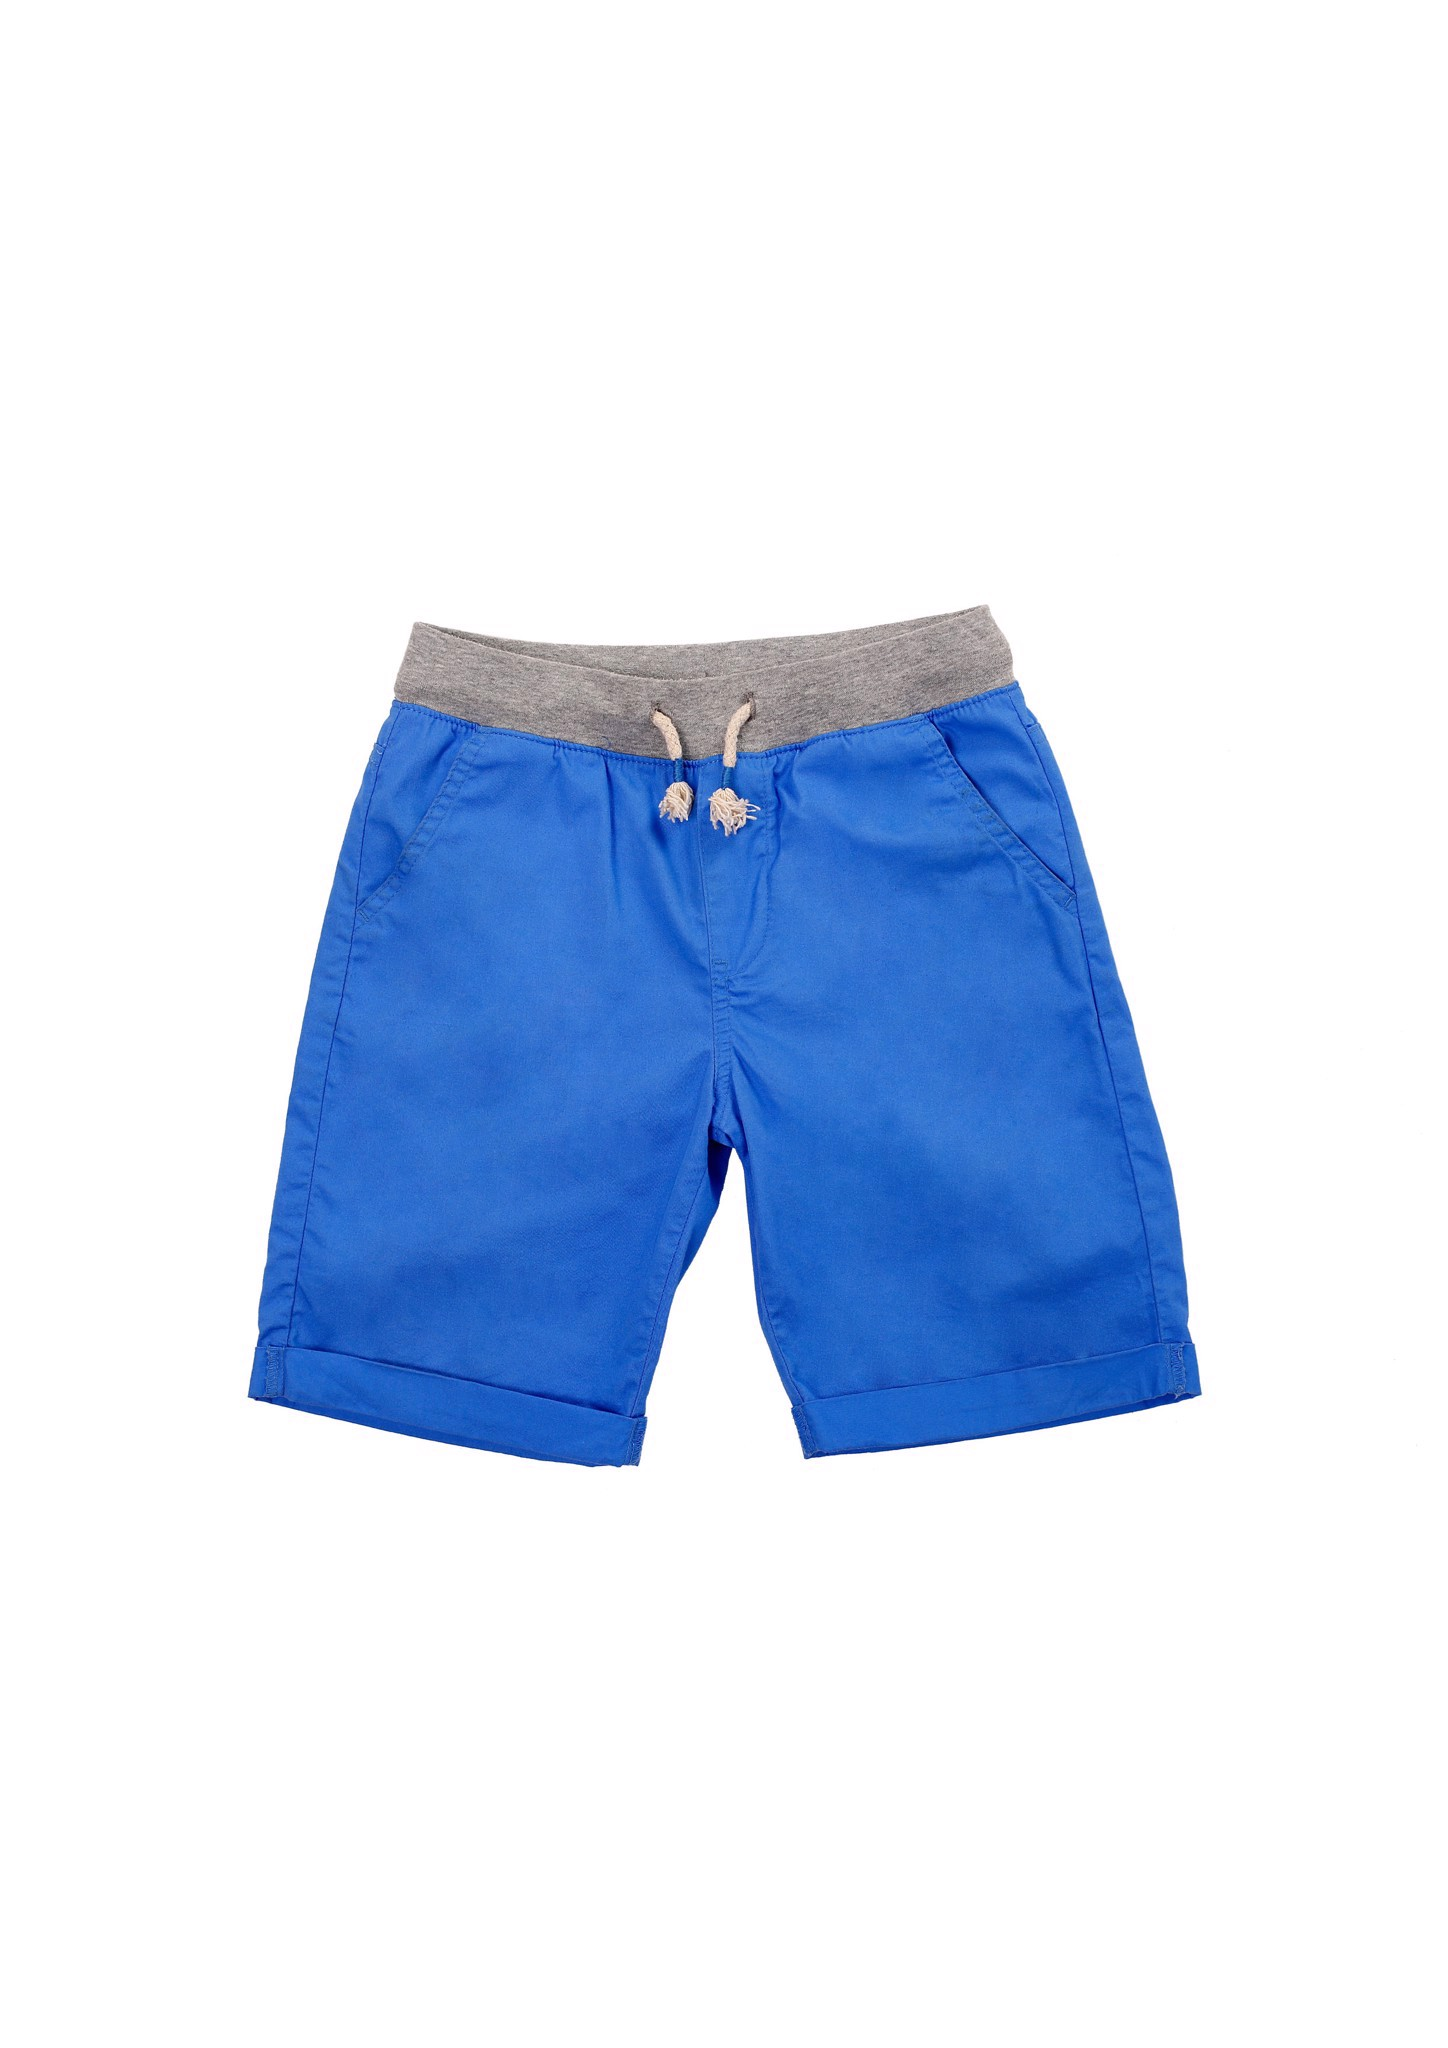 Quần shorts kaki (Pull on Bermuda )